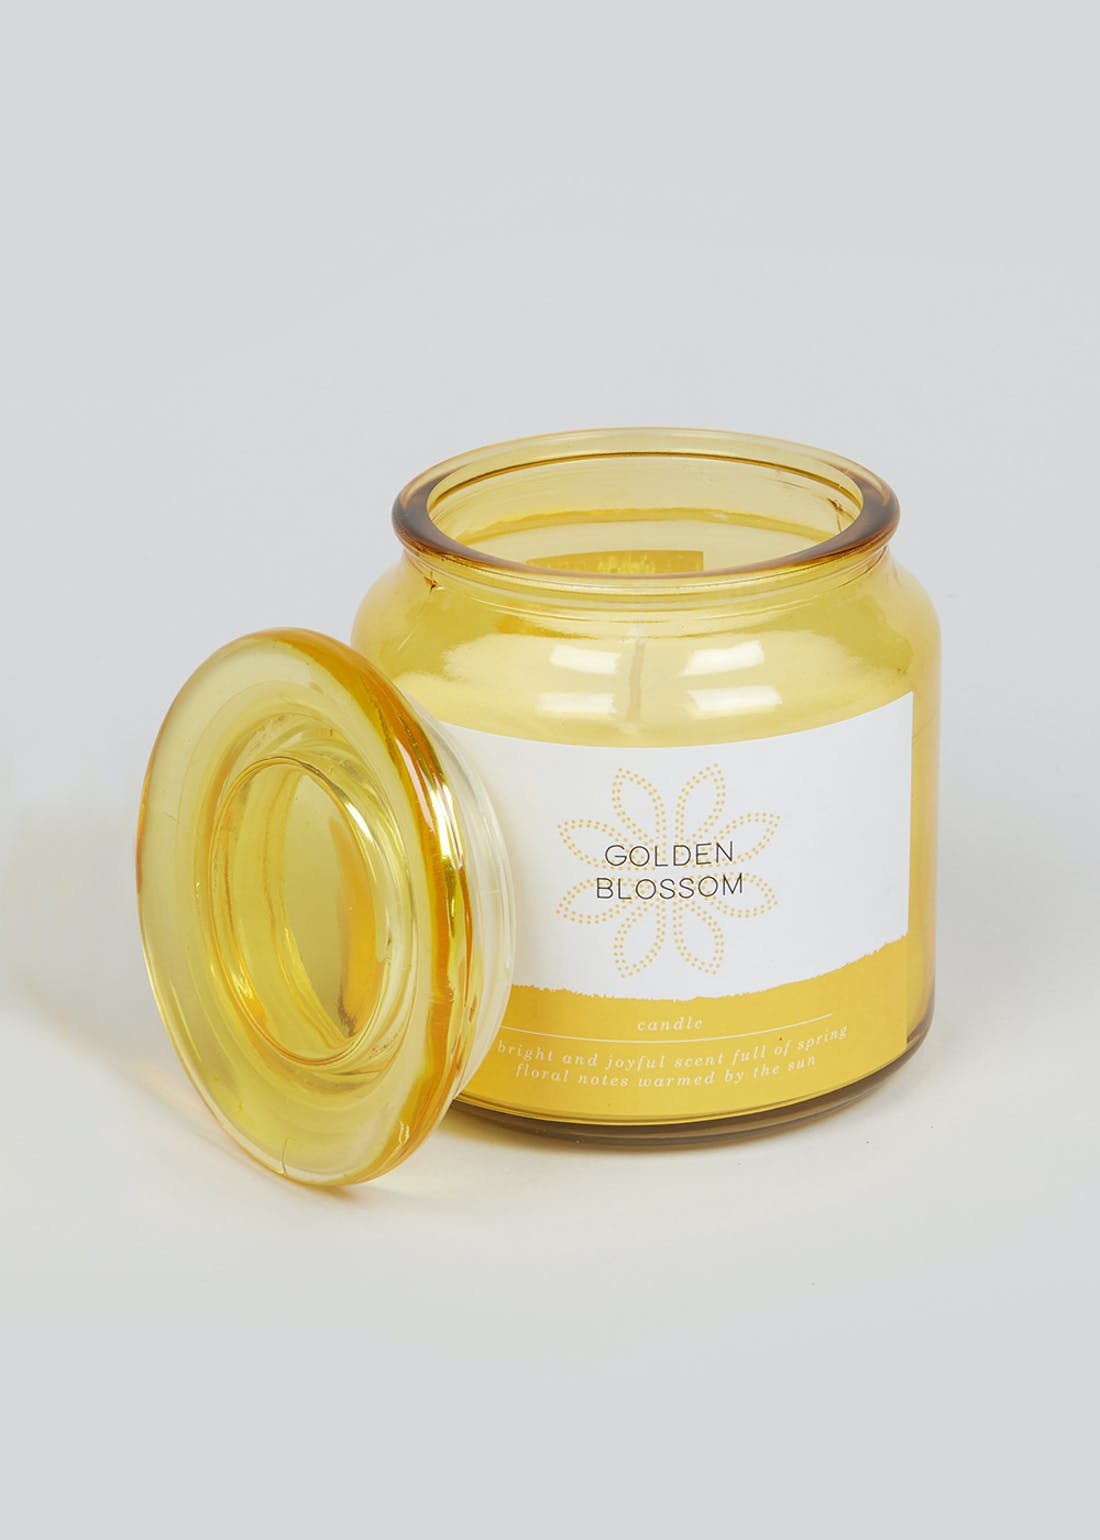 Golden Blossom Glass Candle Jar (11cm x 10cm)